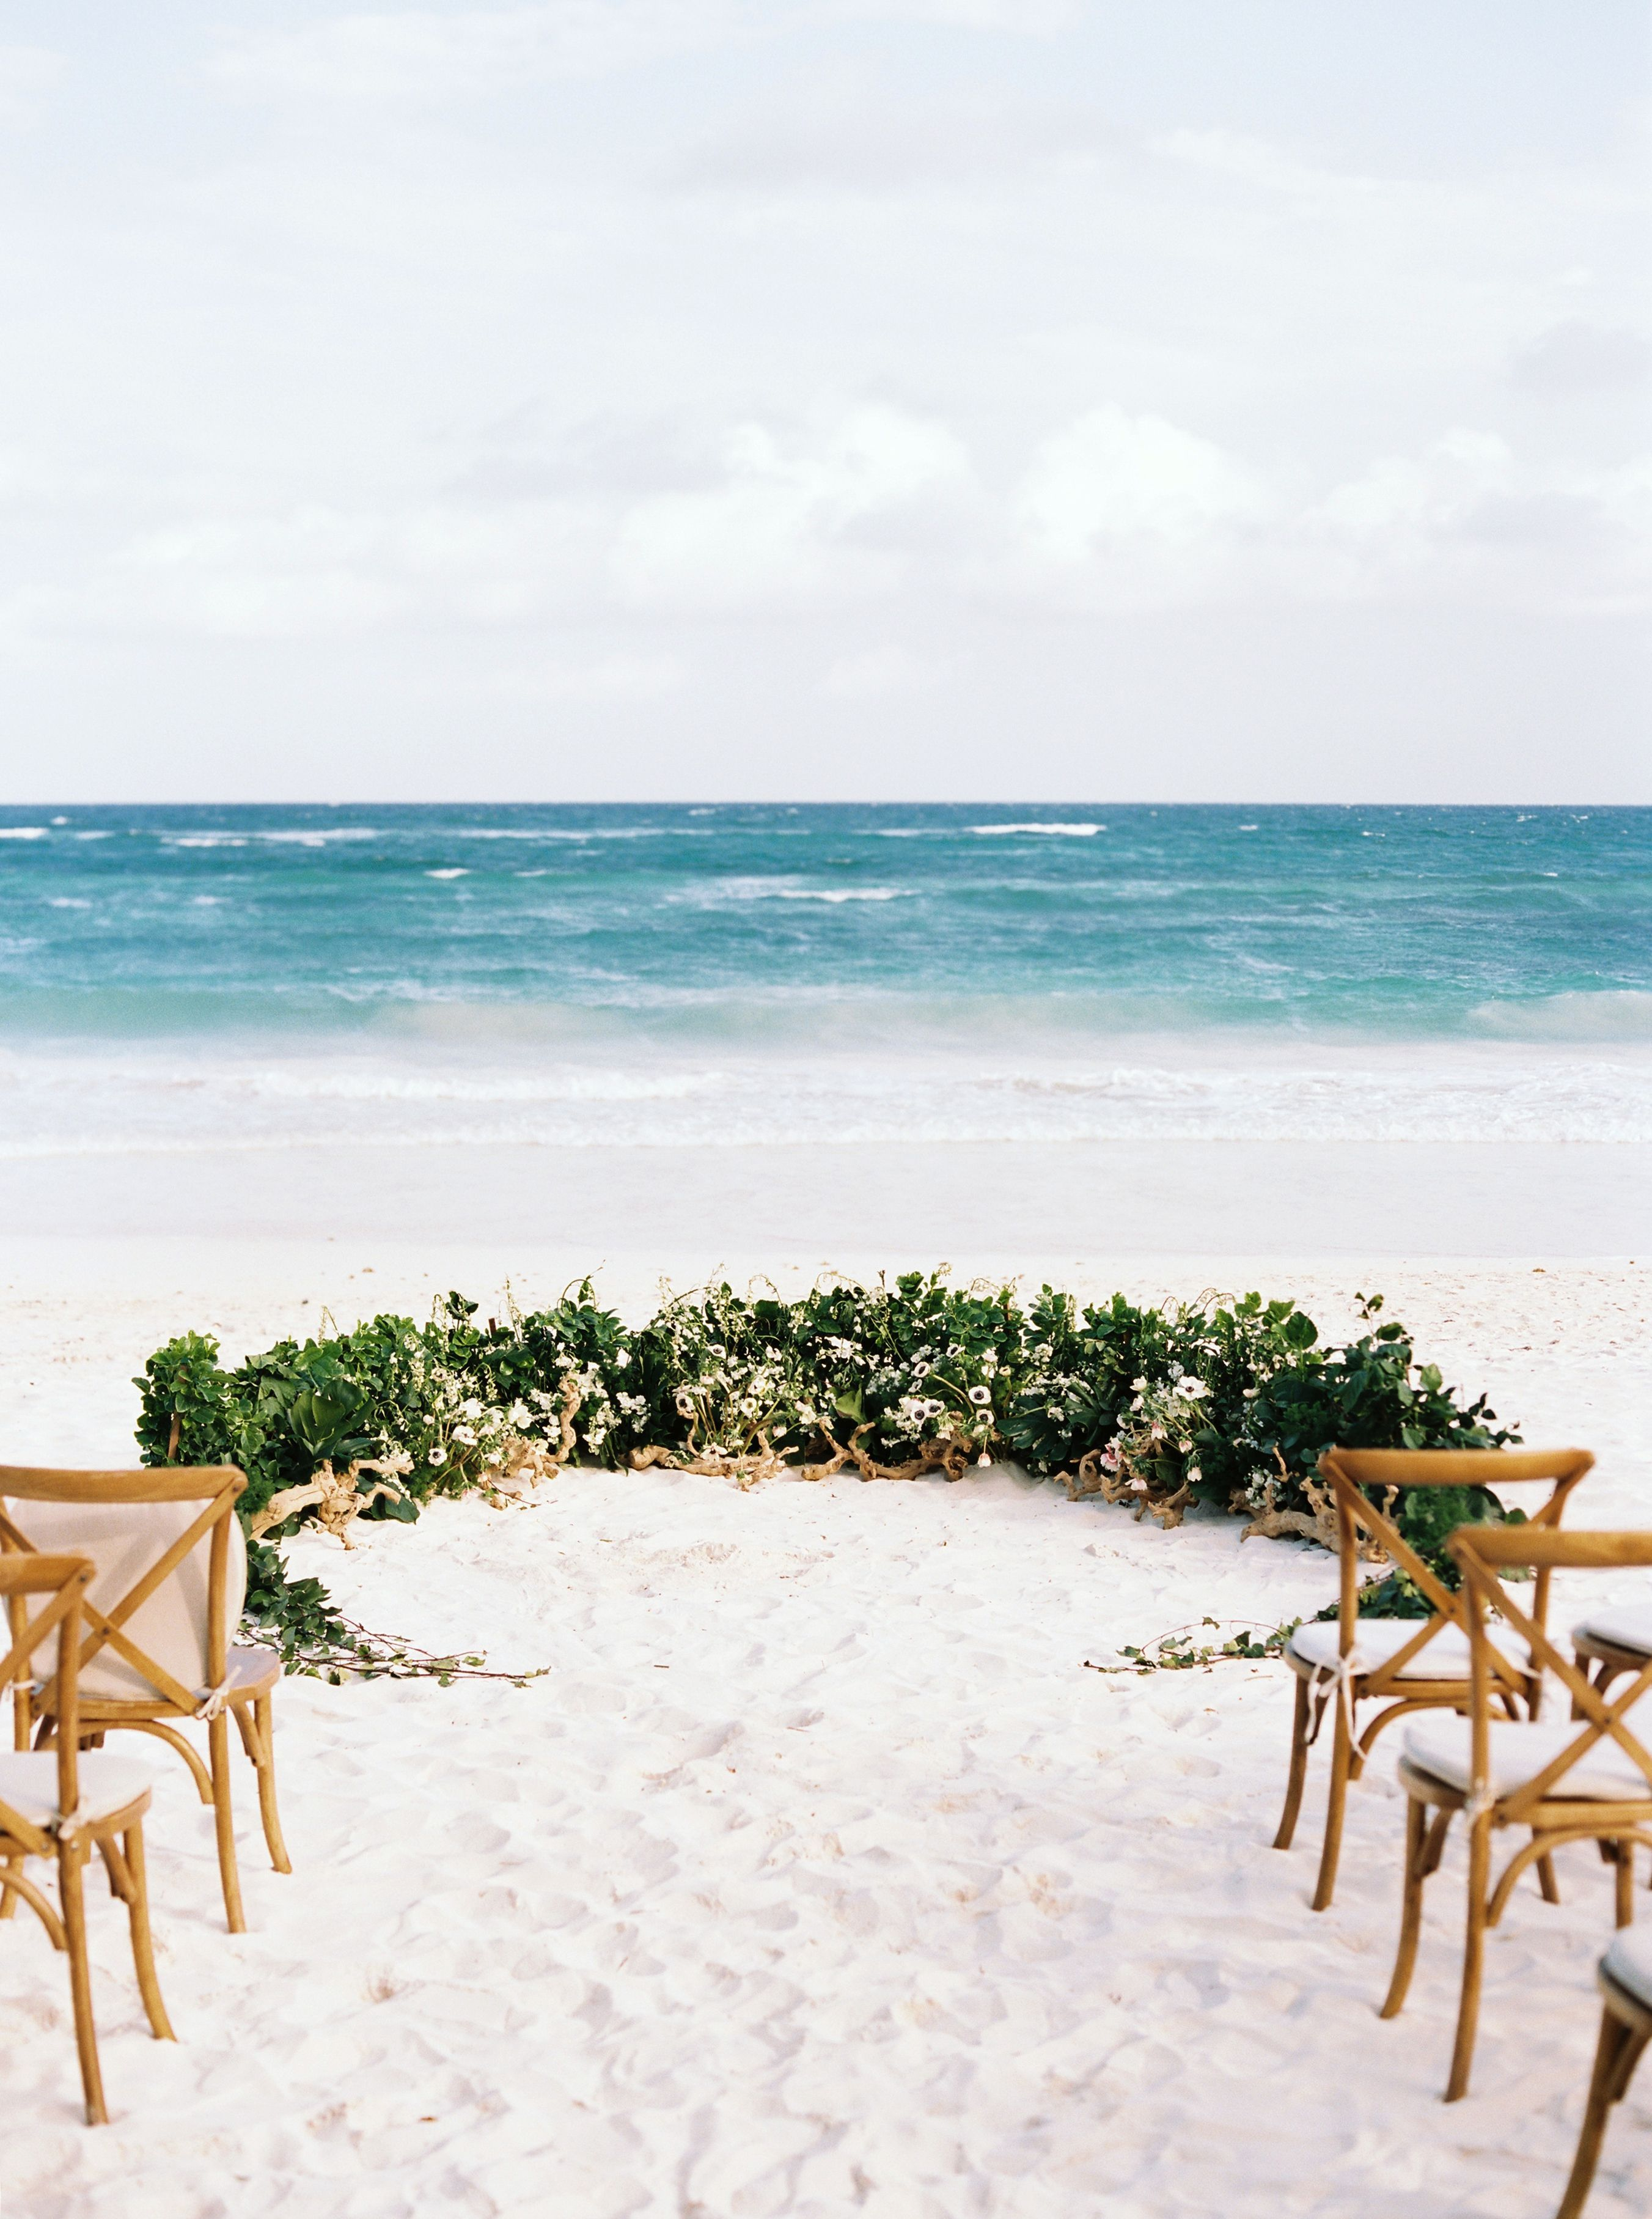 Wedding decoration ideas at the beach  Akiin Beach Tulum Destination Wedding  Wedding Ideas for the Beach